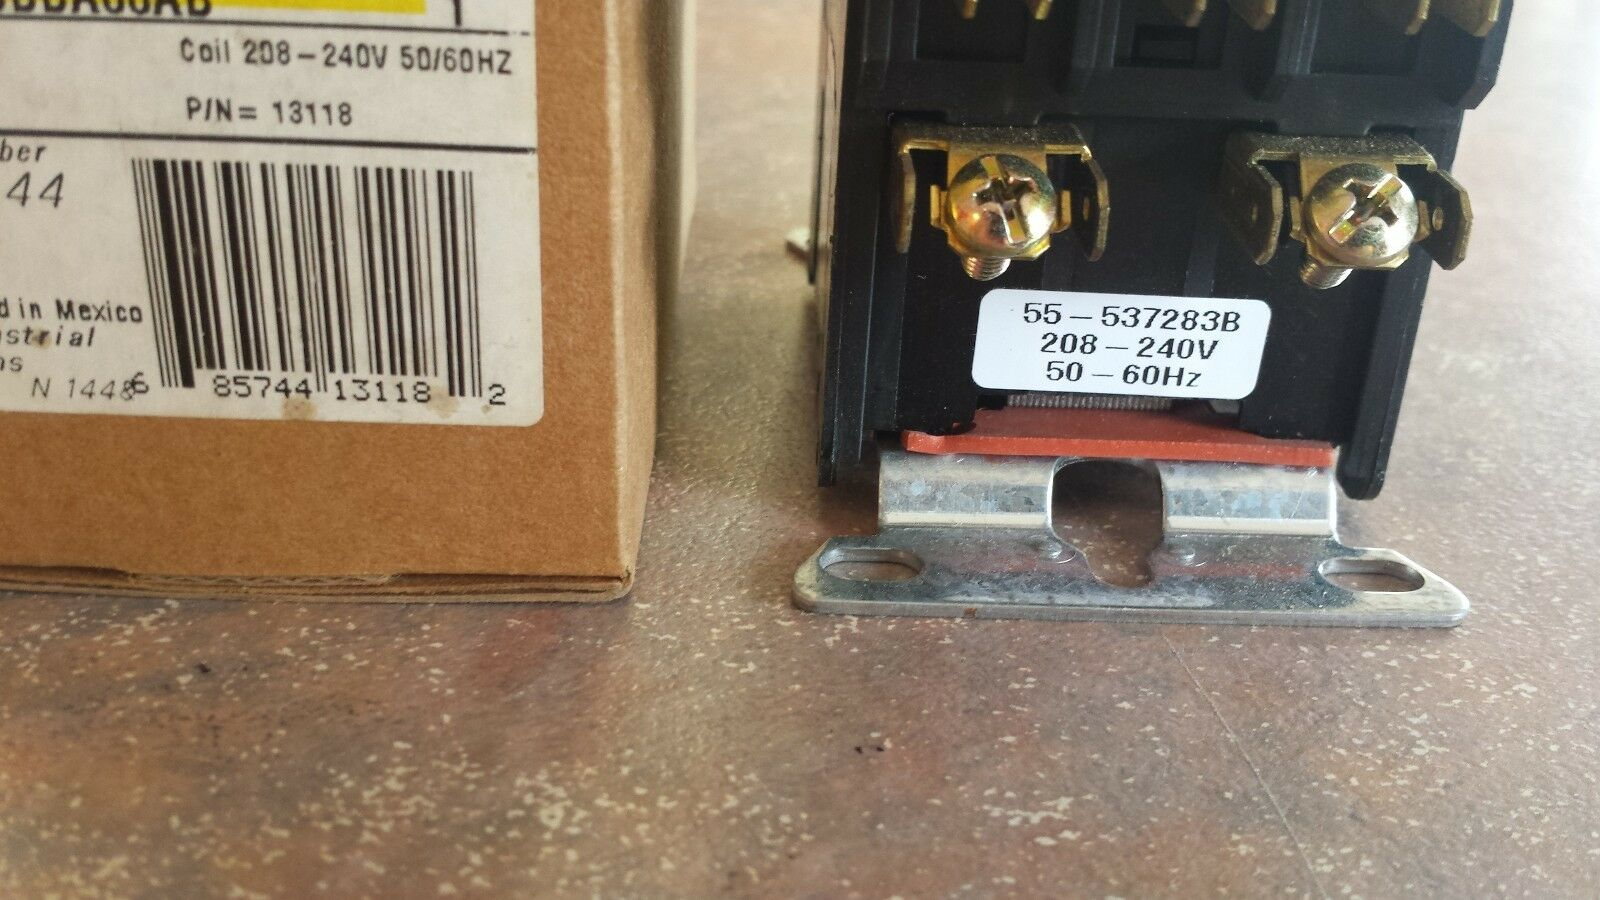 CR453AD3-BBBA00AB  GE   Contactor 208-240V Coil   453AD3BBBA00AB   NIB